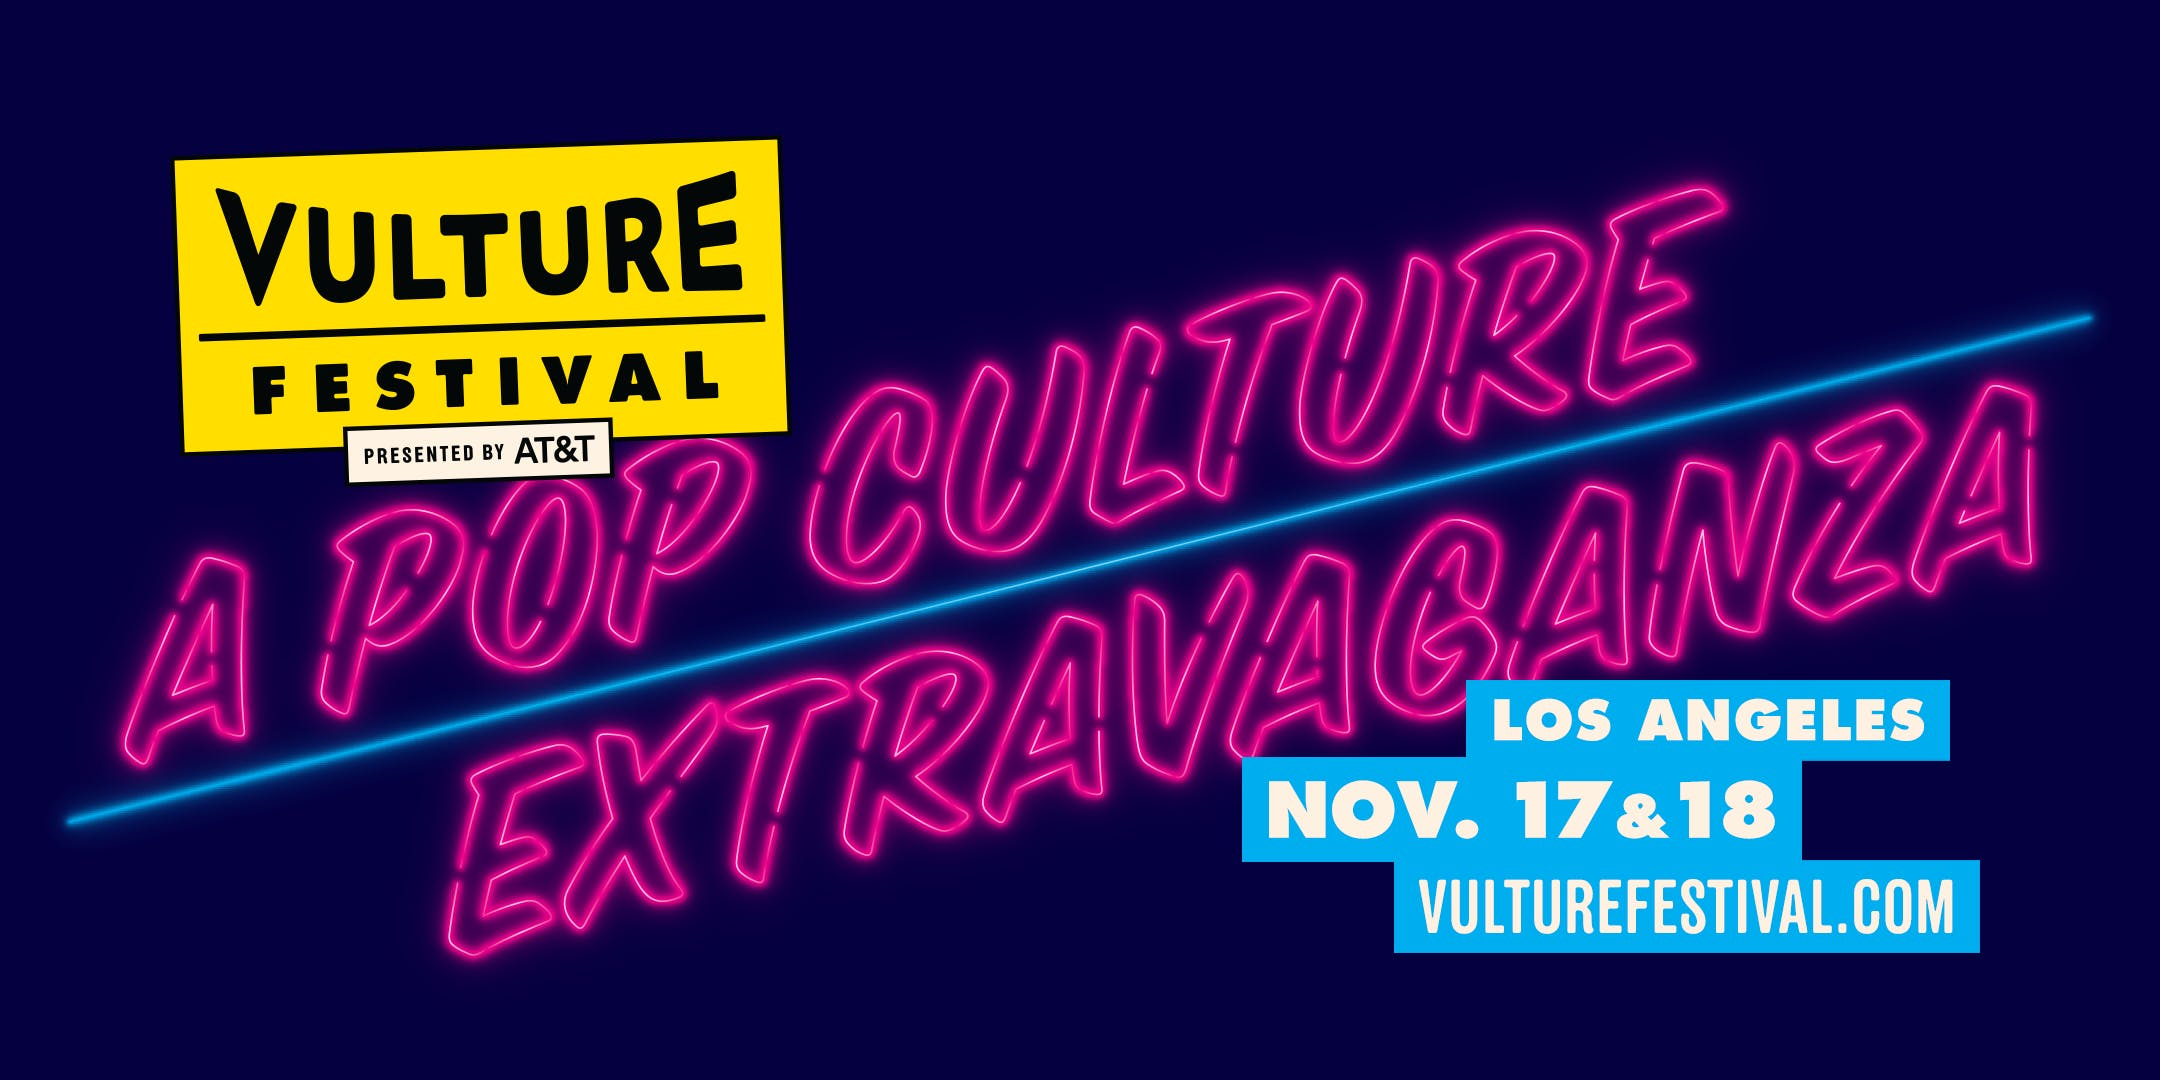 Vulture Festival LA - Good One Podcast With L